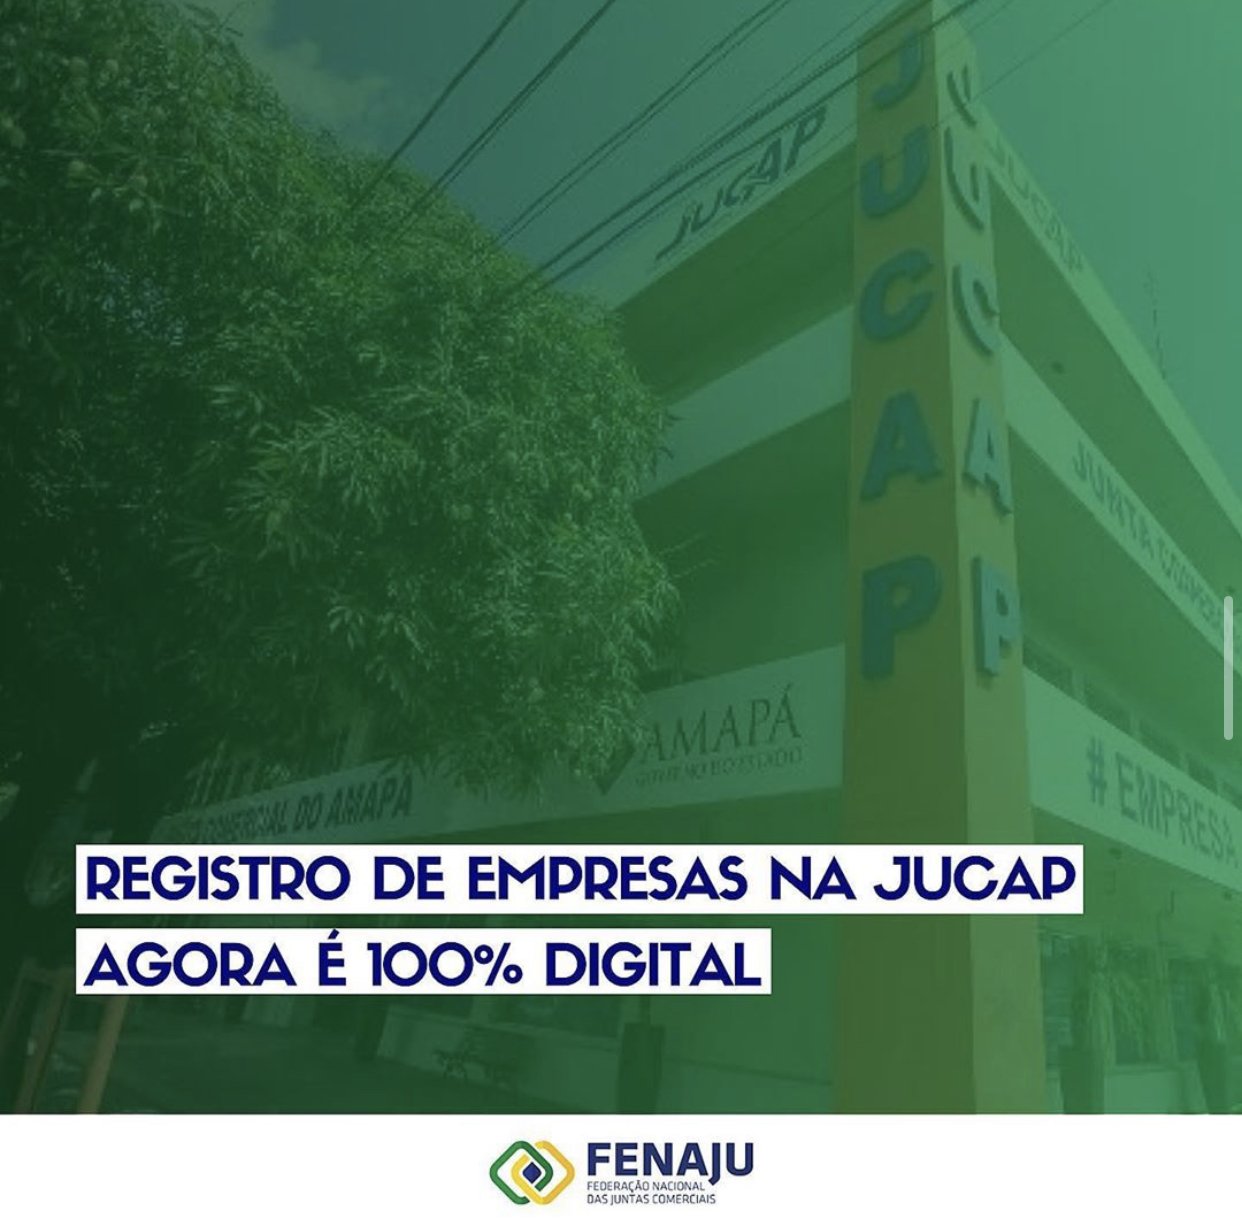 Registro digital de empresas na JUCAP é 100% digital